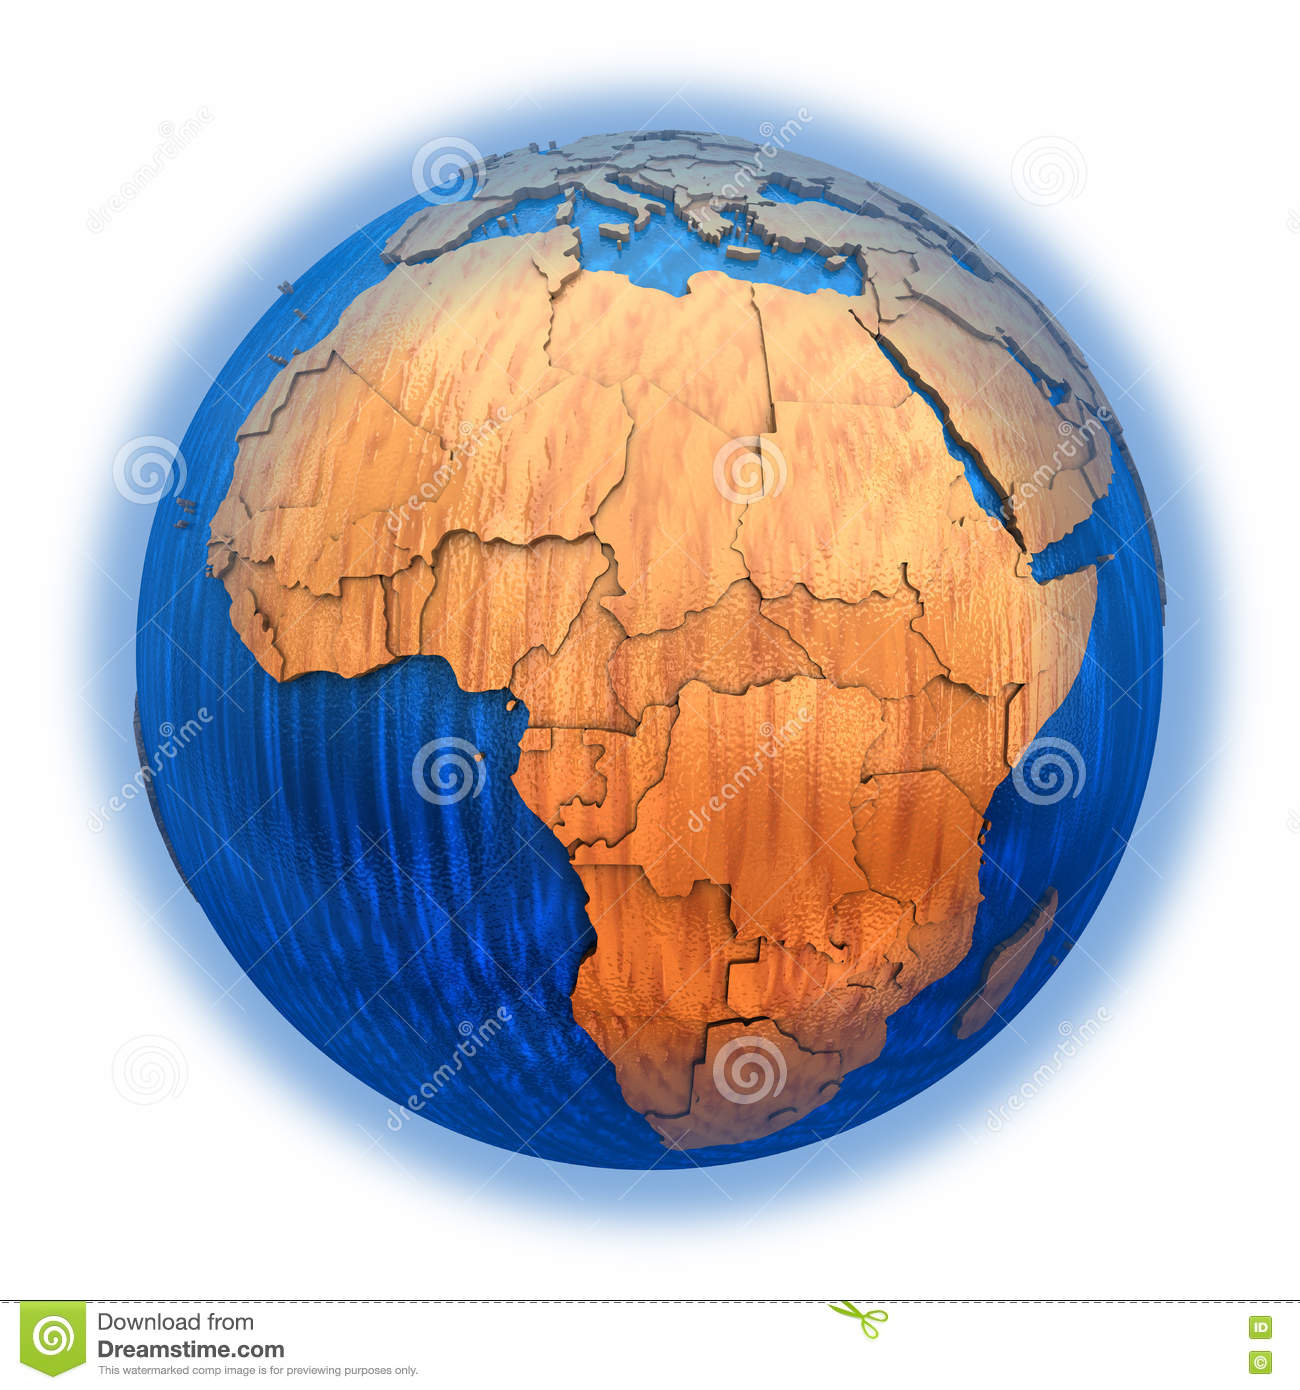 africa on wooden model of planet earth with embossed continents and visible  country borders  3d illustration isolated on white background